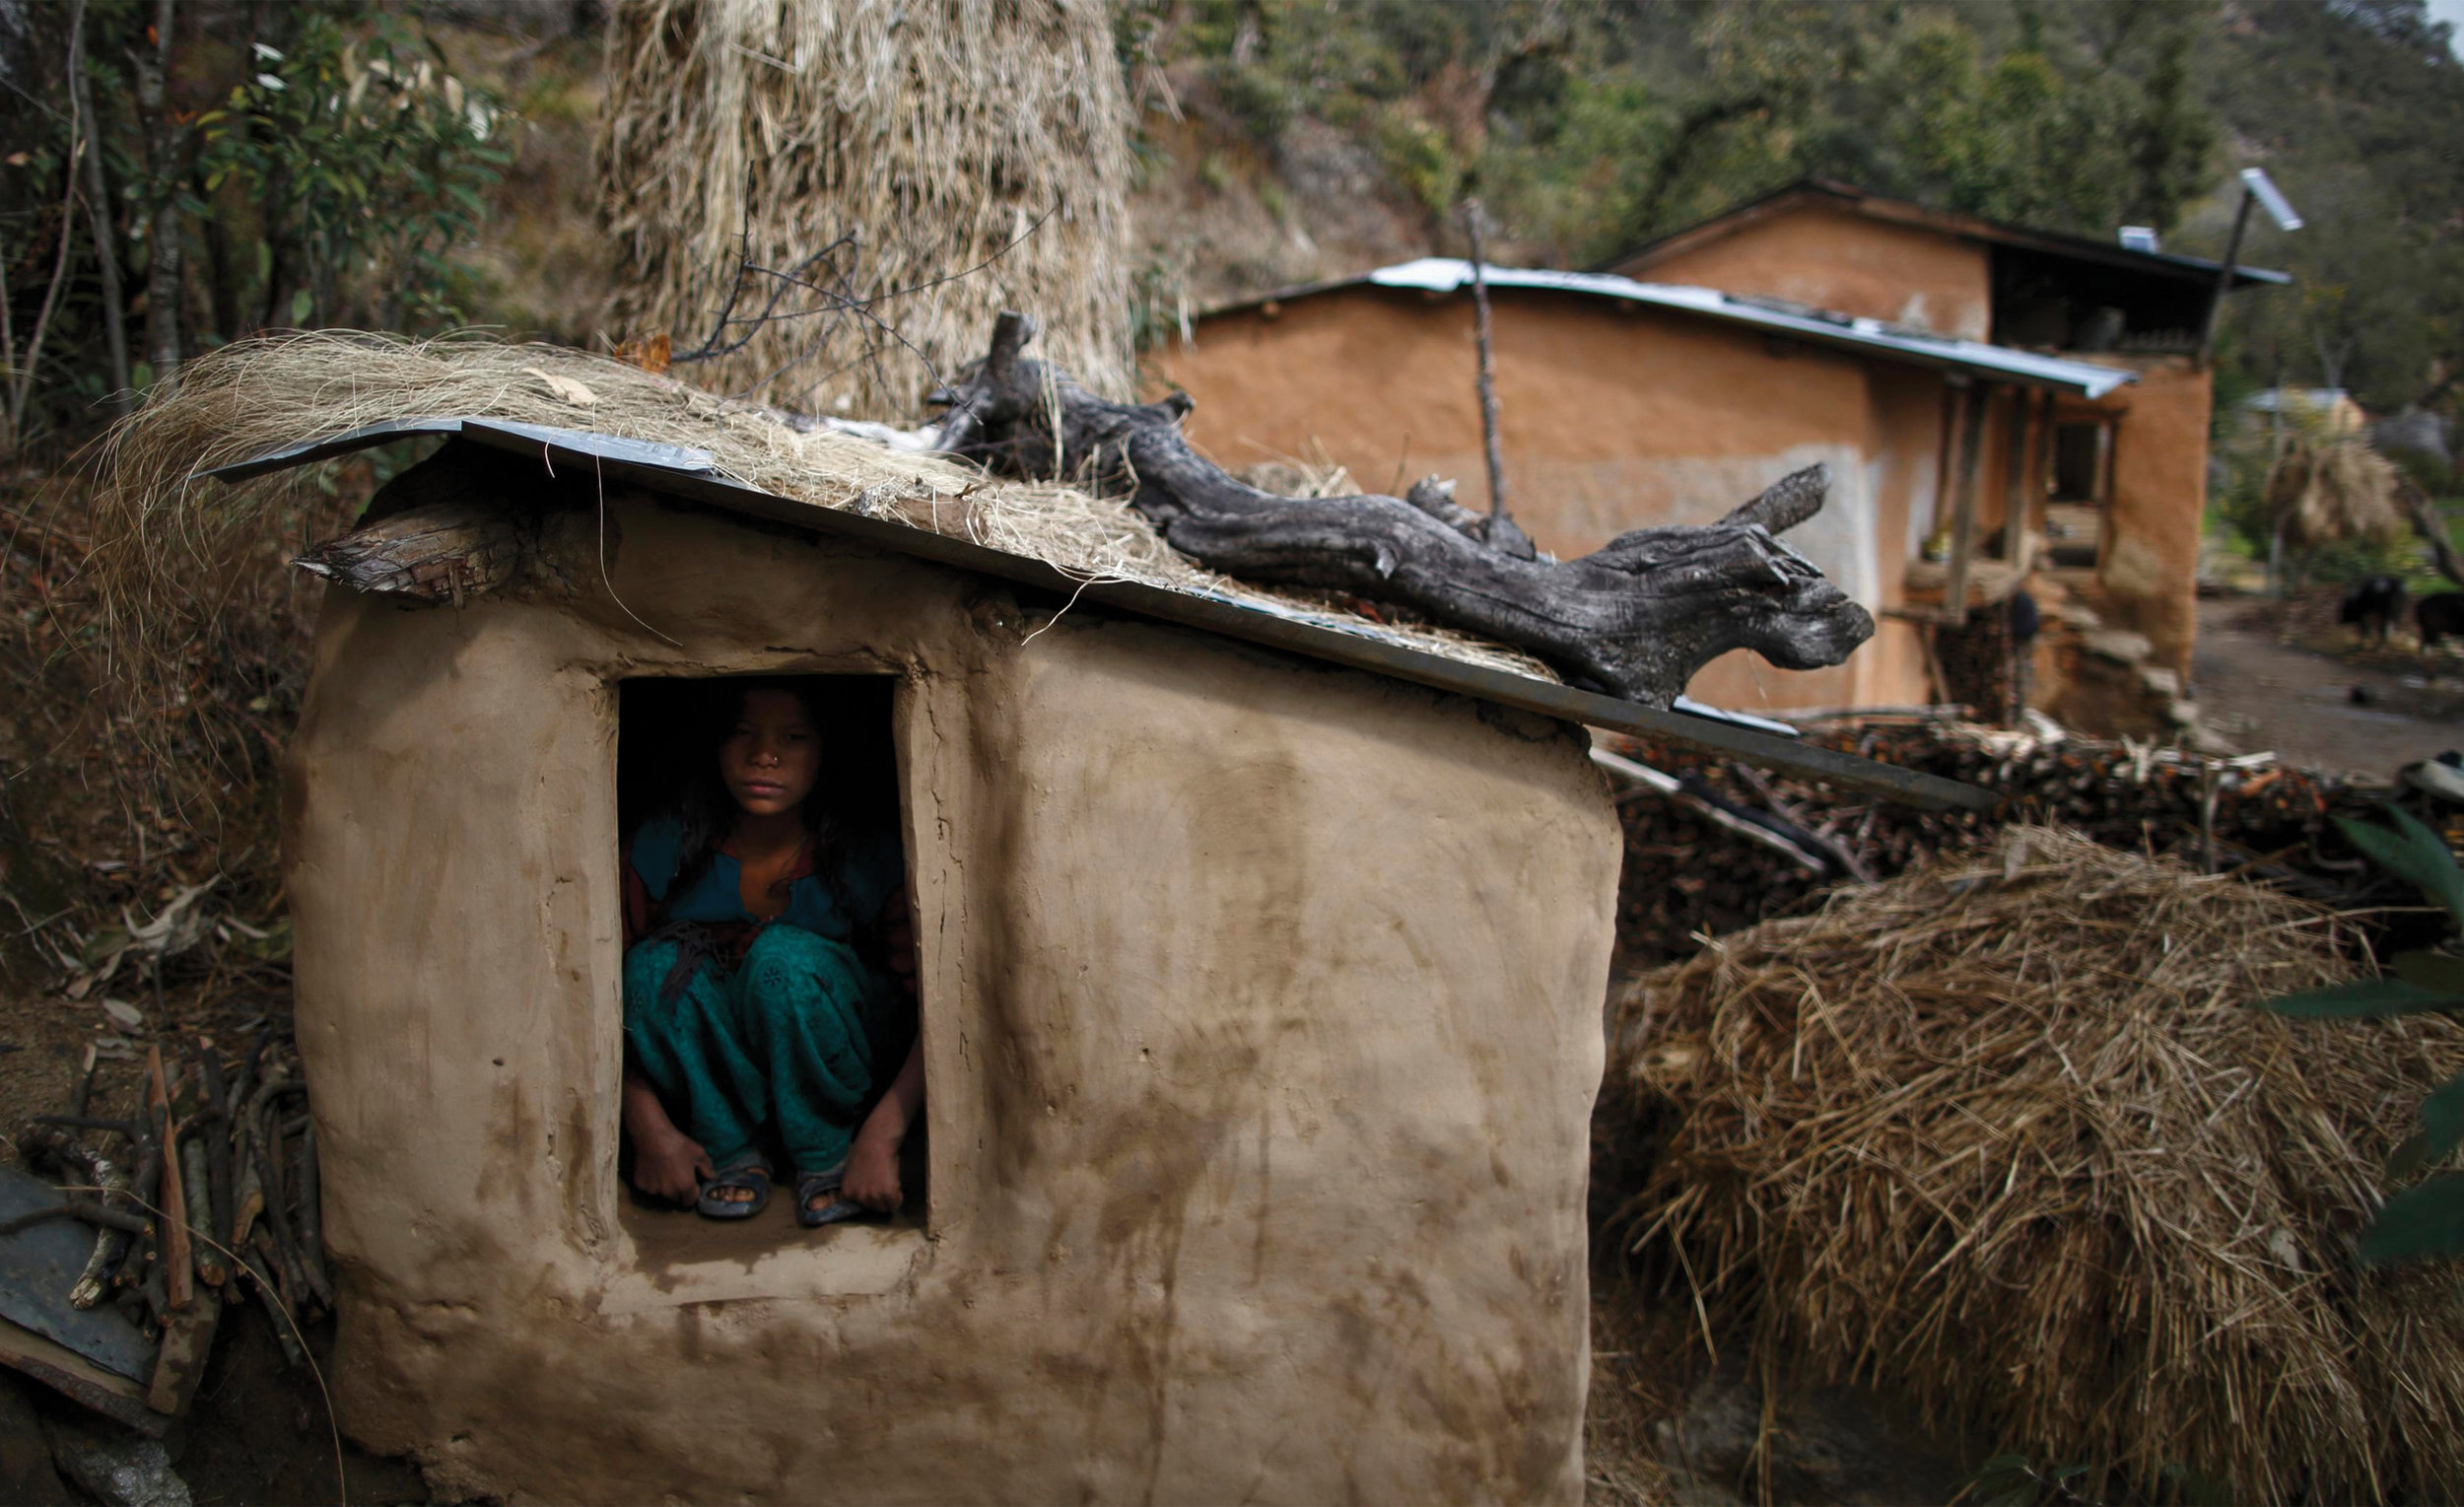 Image originally featured in  Nepal's bleeding shame  by Kate Hodal in The Guardian.